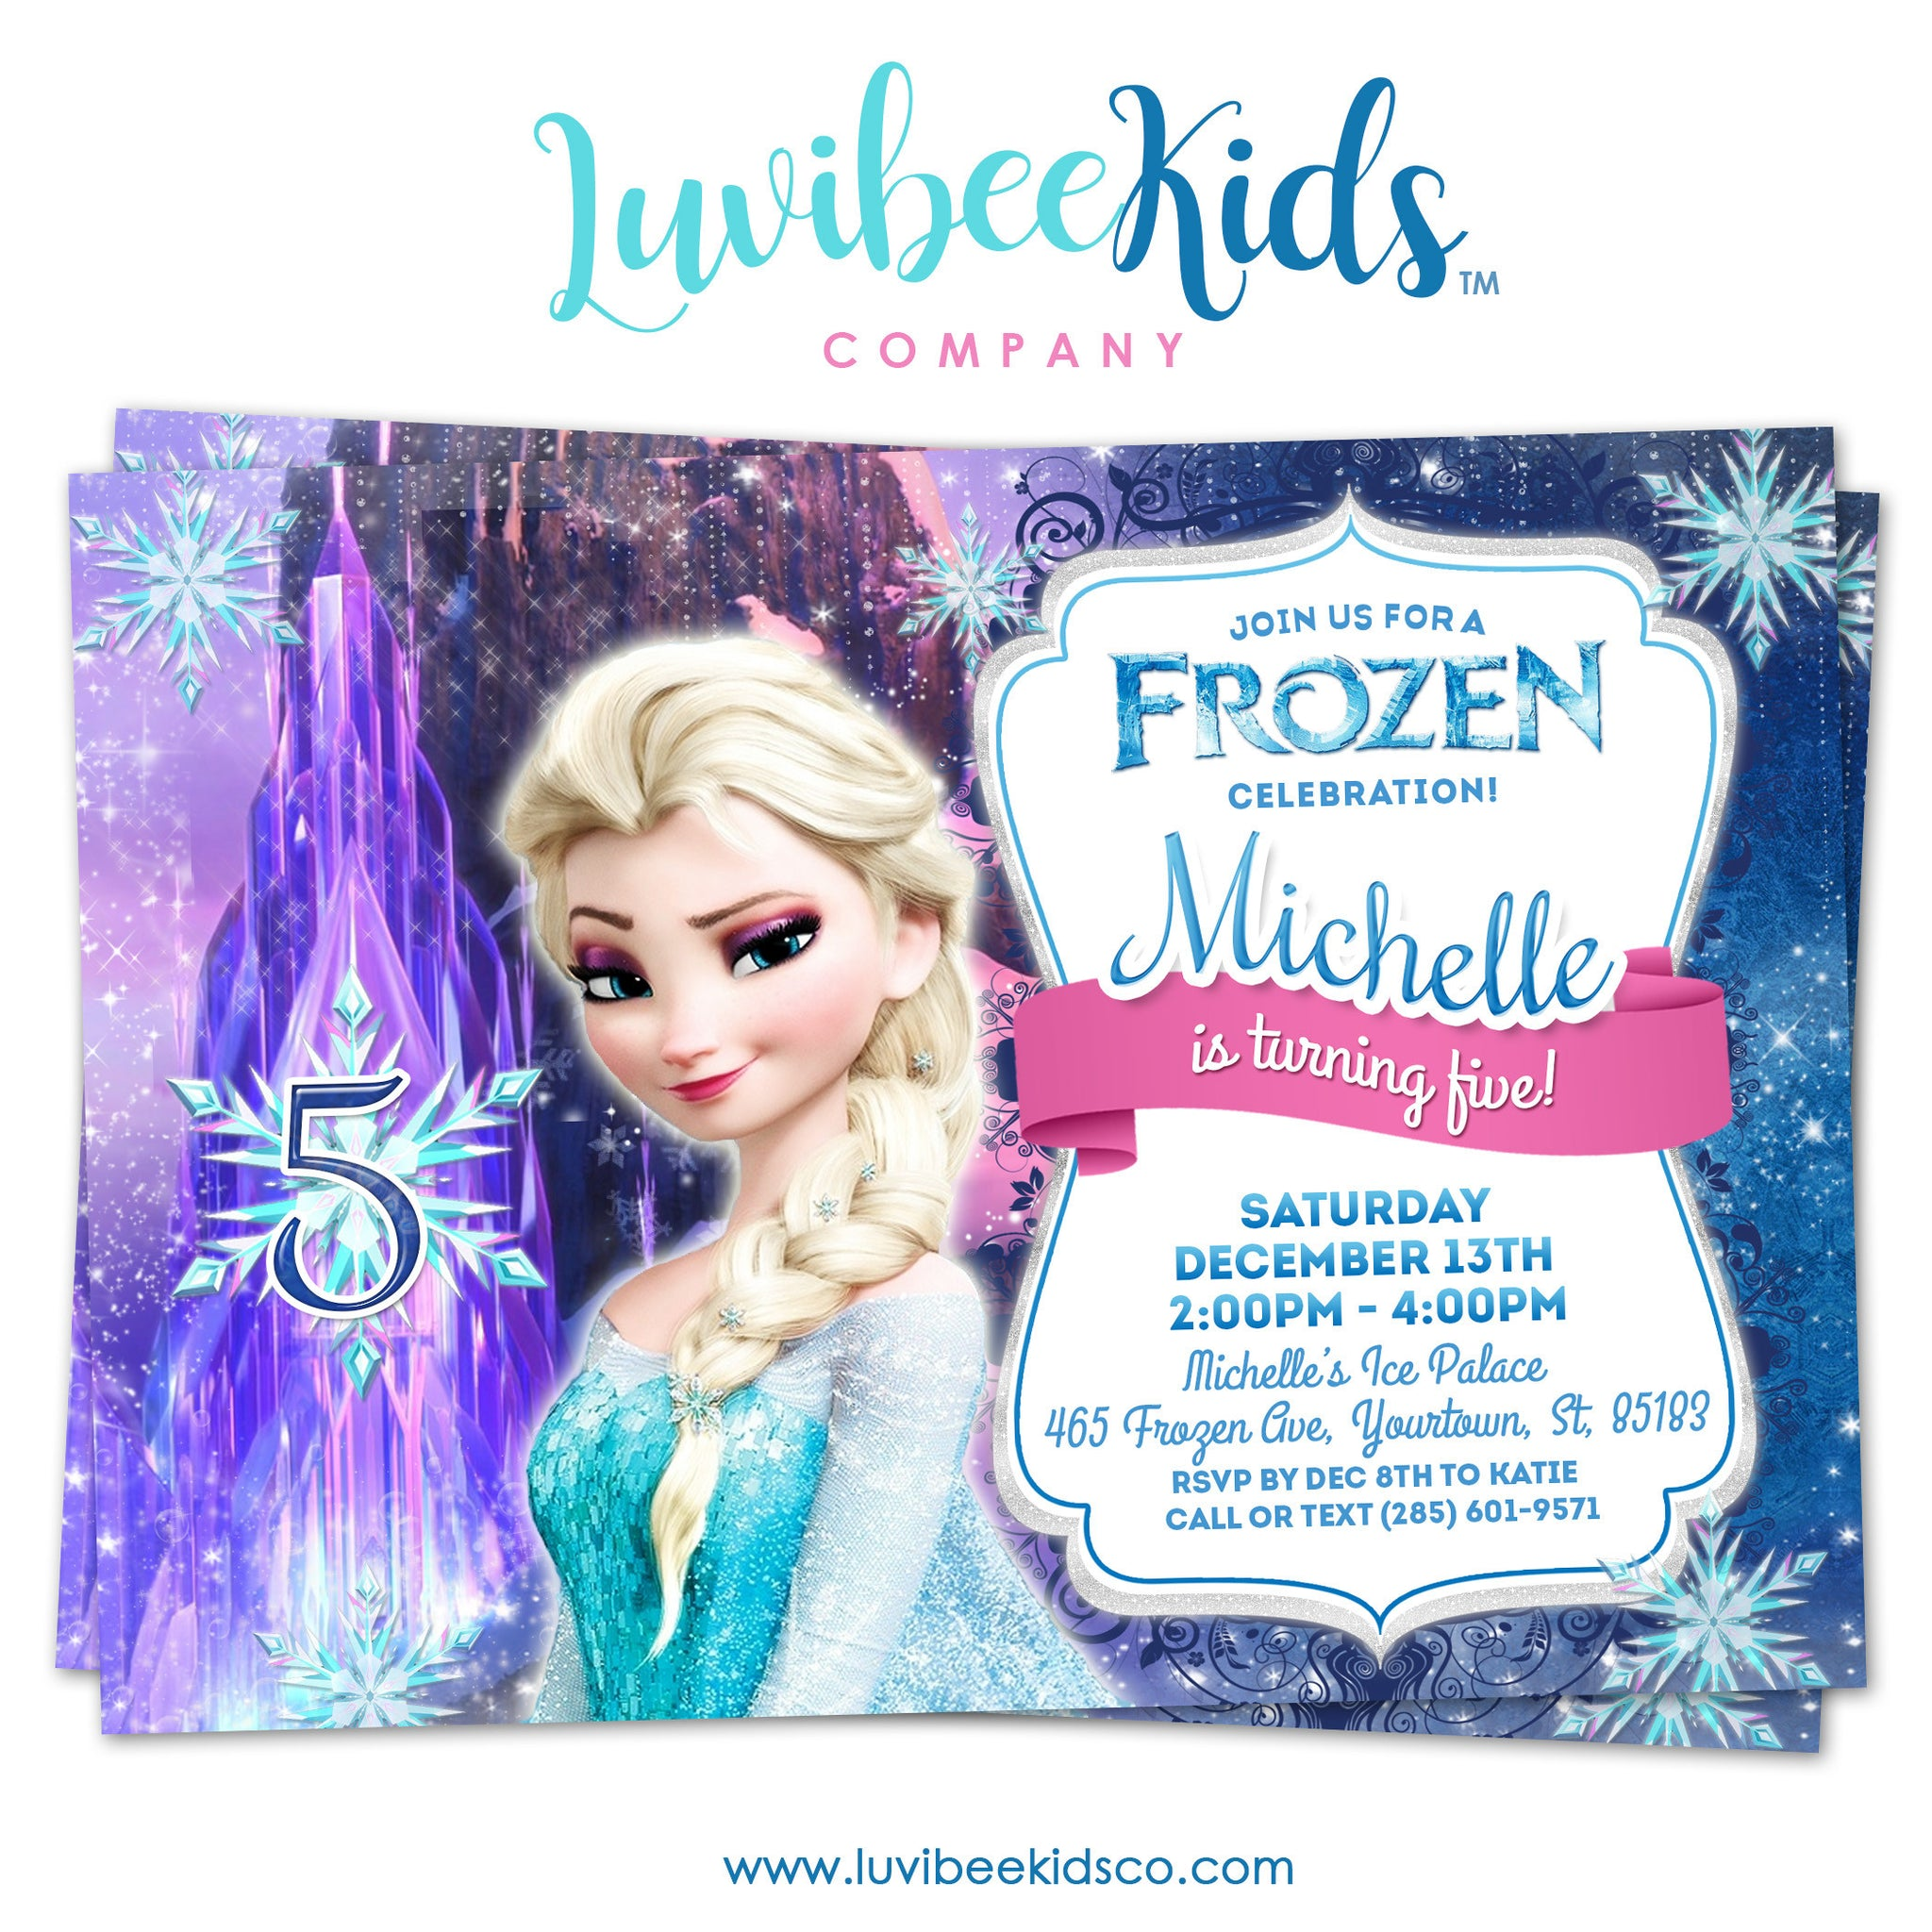 photo regarding Frozen Invitations Printable named Frozen Birthday Invitation Frozen Elsa Birthday Bash Printables